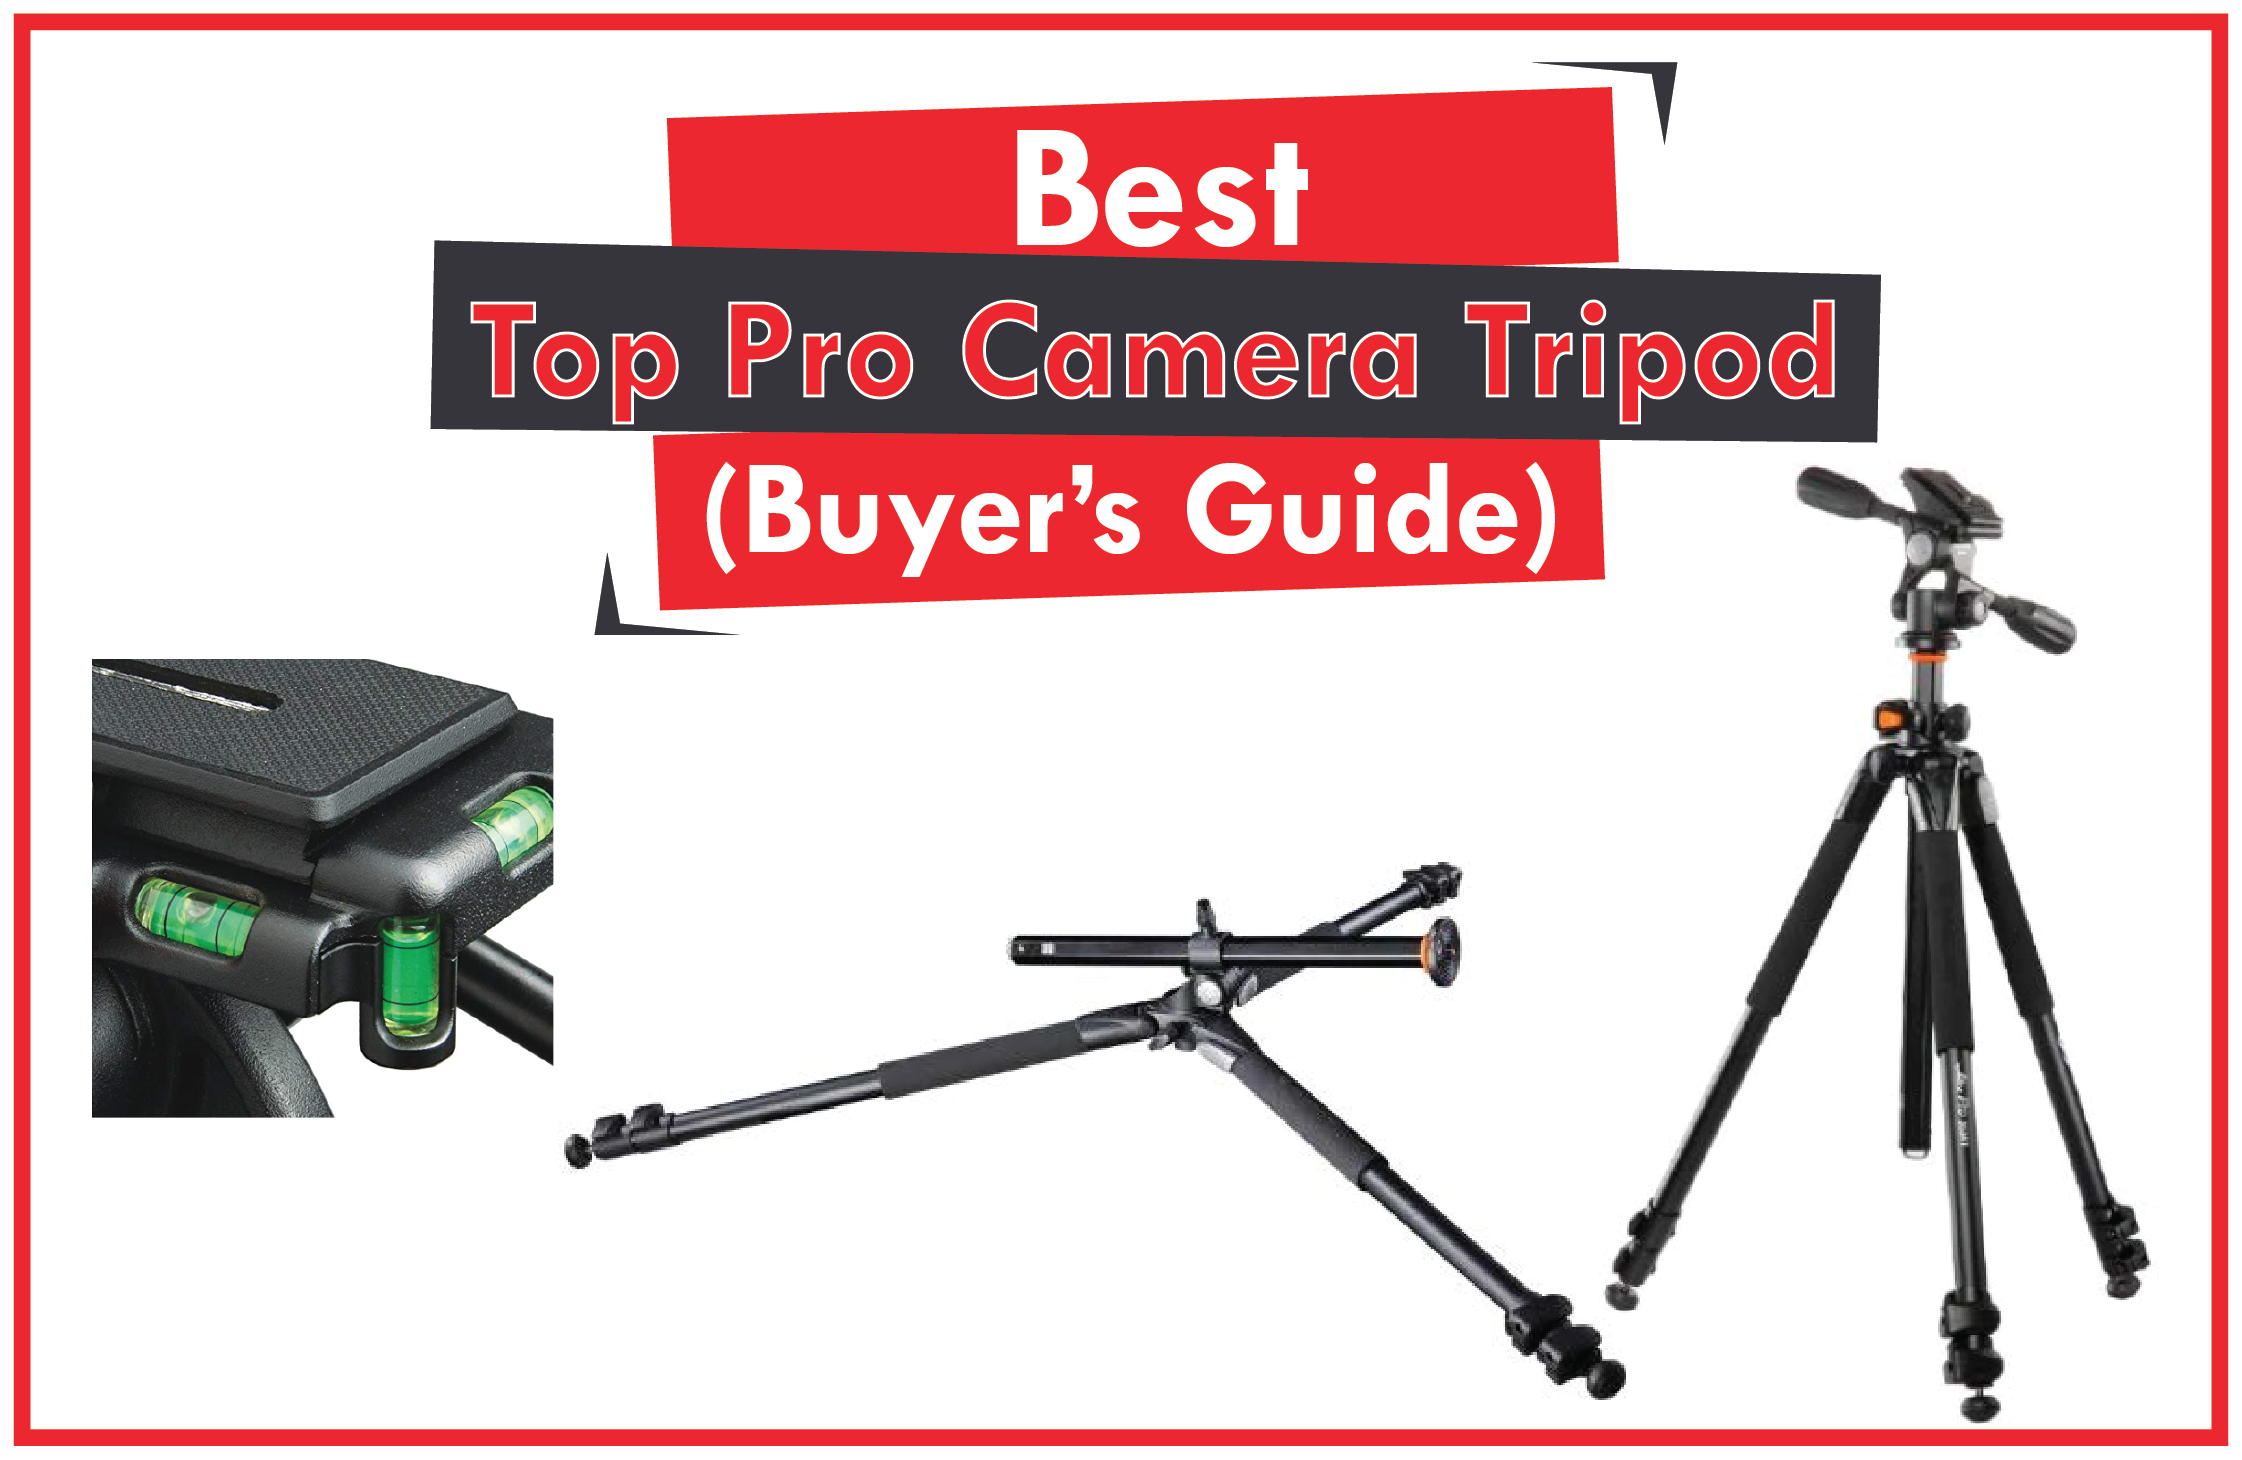 Top Pro Camera Tripods